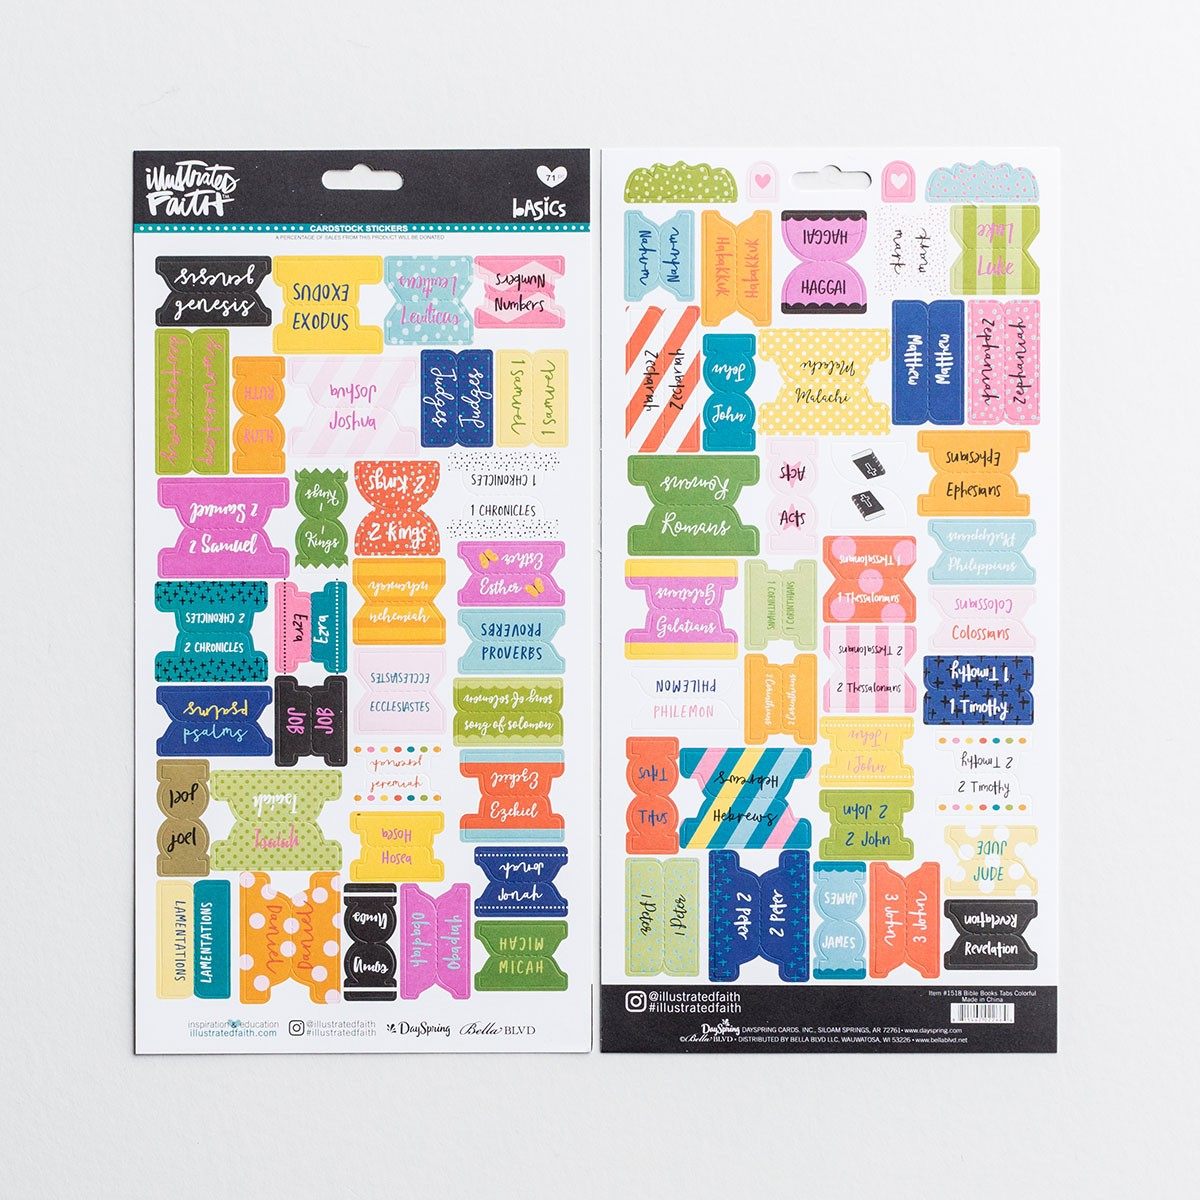 Illustrated Faith - Books Of The Bible Tabs, Colorful   Dayspring - Free Printable Books Of The Bible Tabs